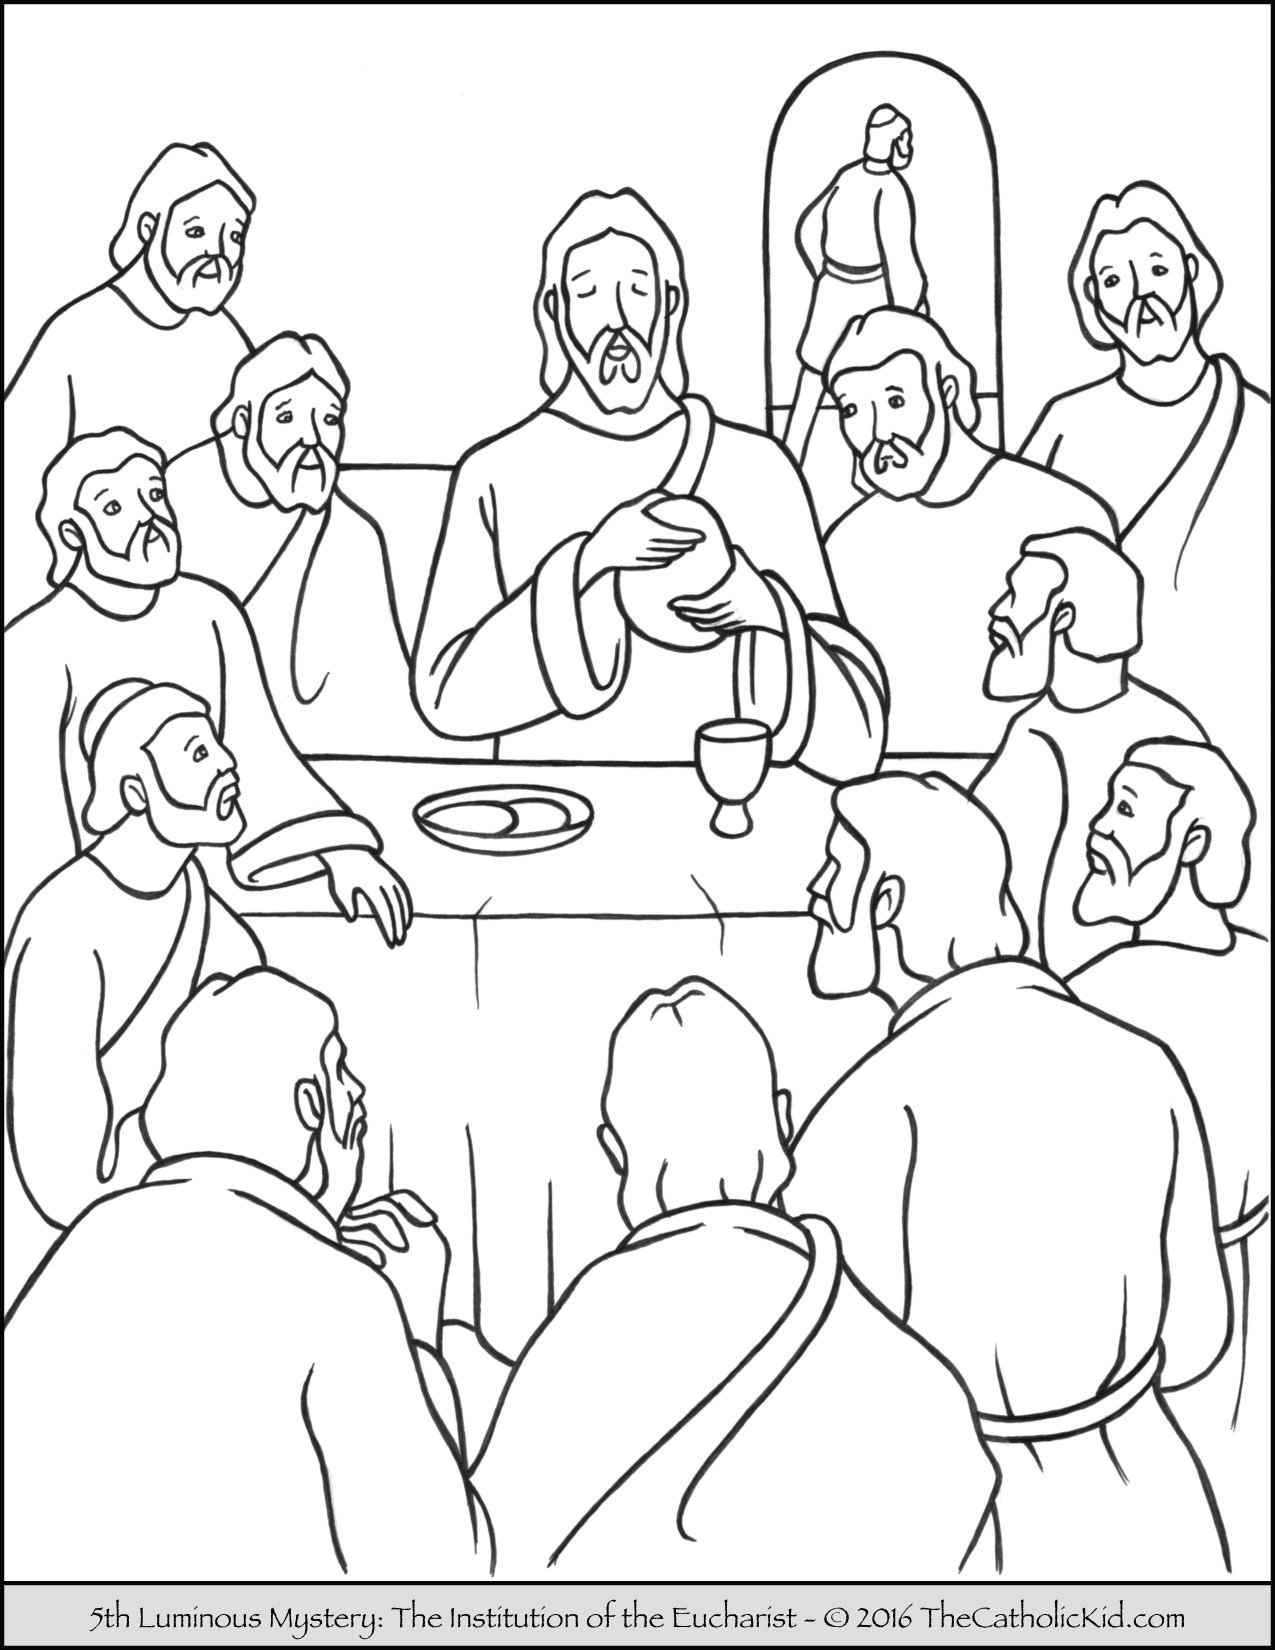 Transfiguration coloring page | Jesus coloring pages, Coloring ... | 1650x1275